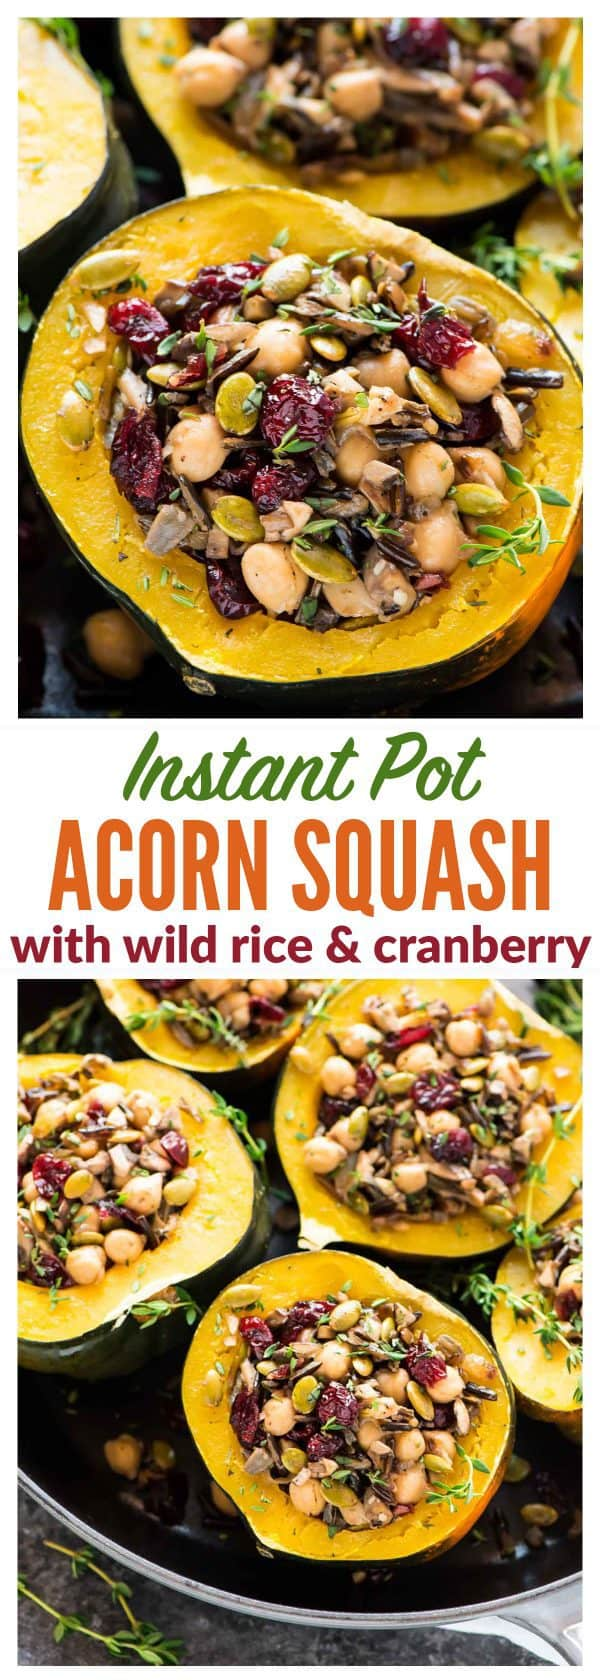 Instant Pot Stuffed Acorn Squash with Wild Rice, Cranberry, Mushroom and Chickpeas. A healthy, filling vegetarian or vegan meal that's so easy and delicious! {vegan, vegetarian, gluten free}